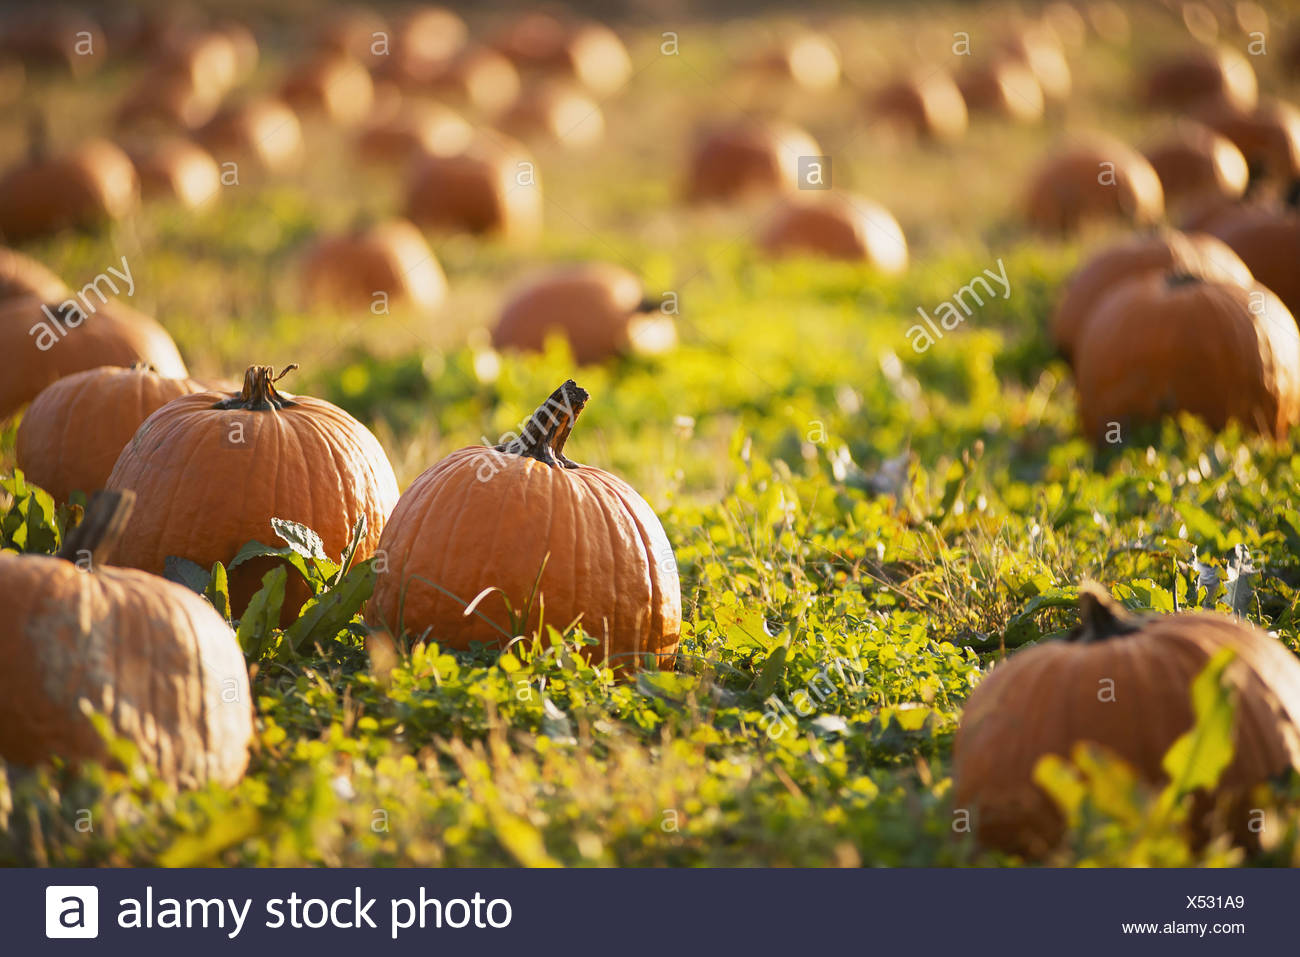 A field of pumpkins growing - Stock Image